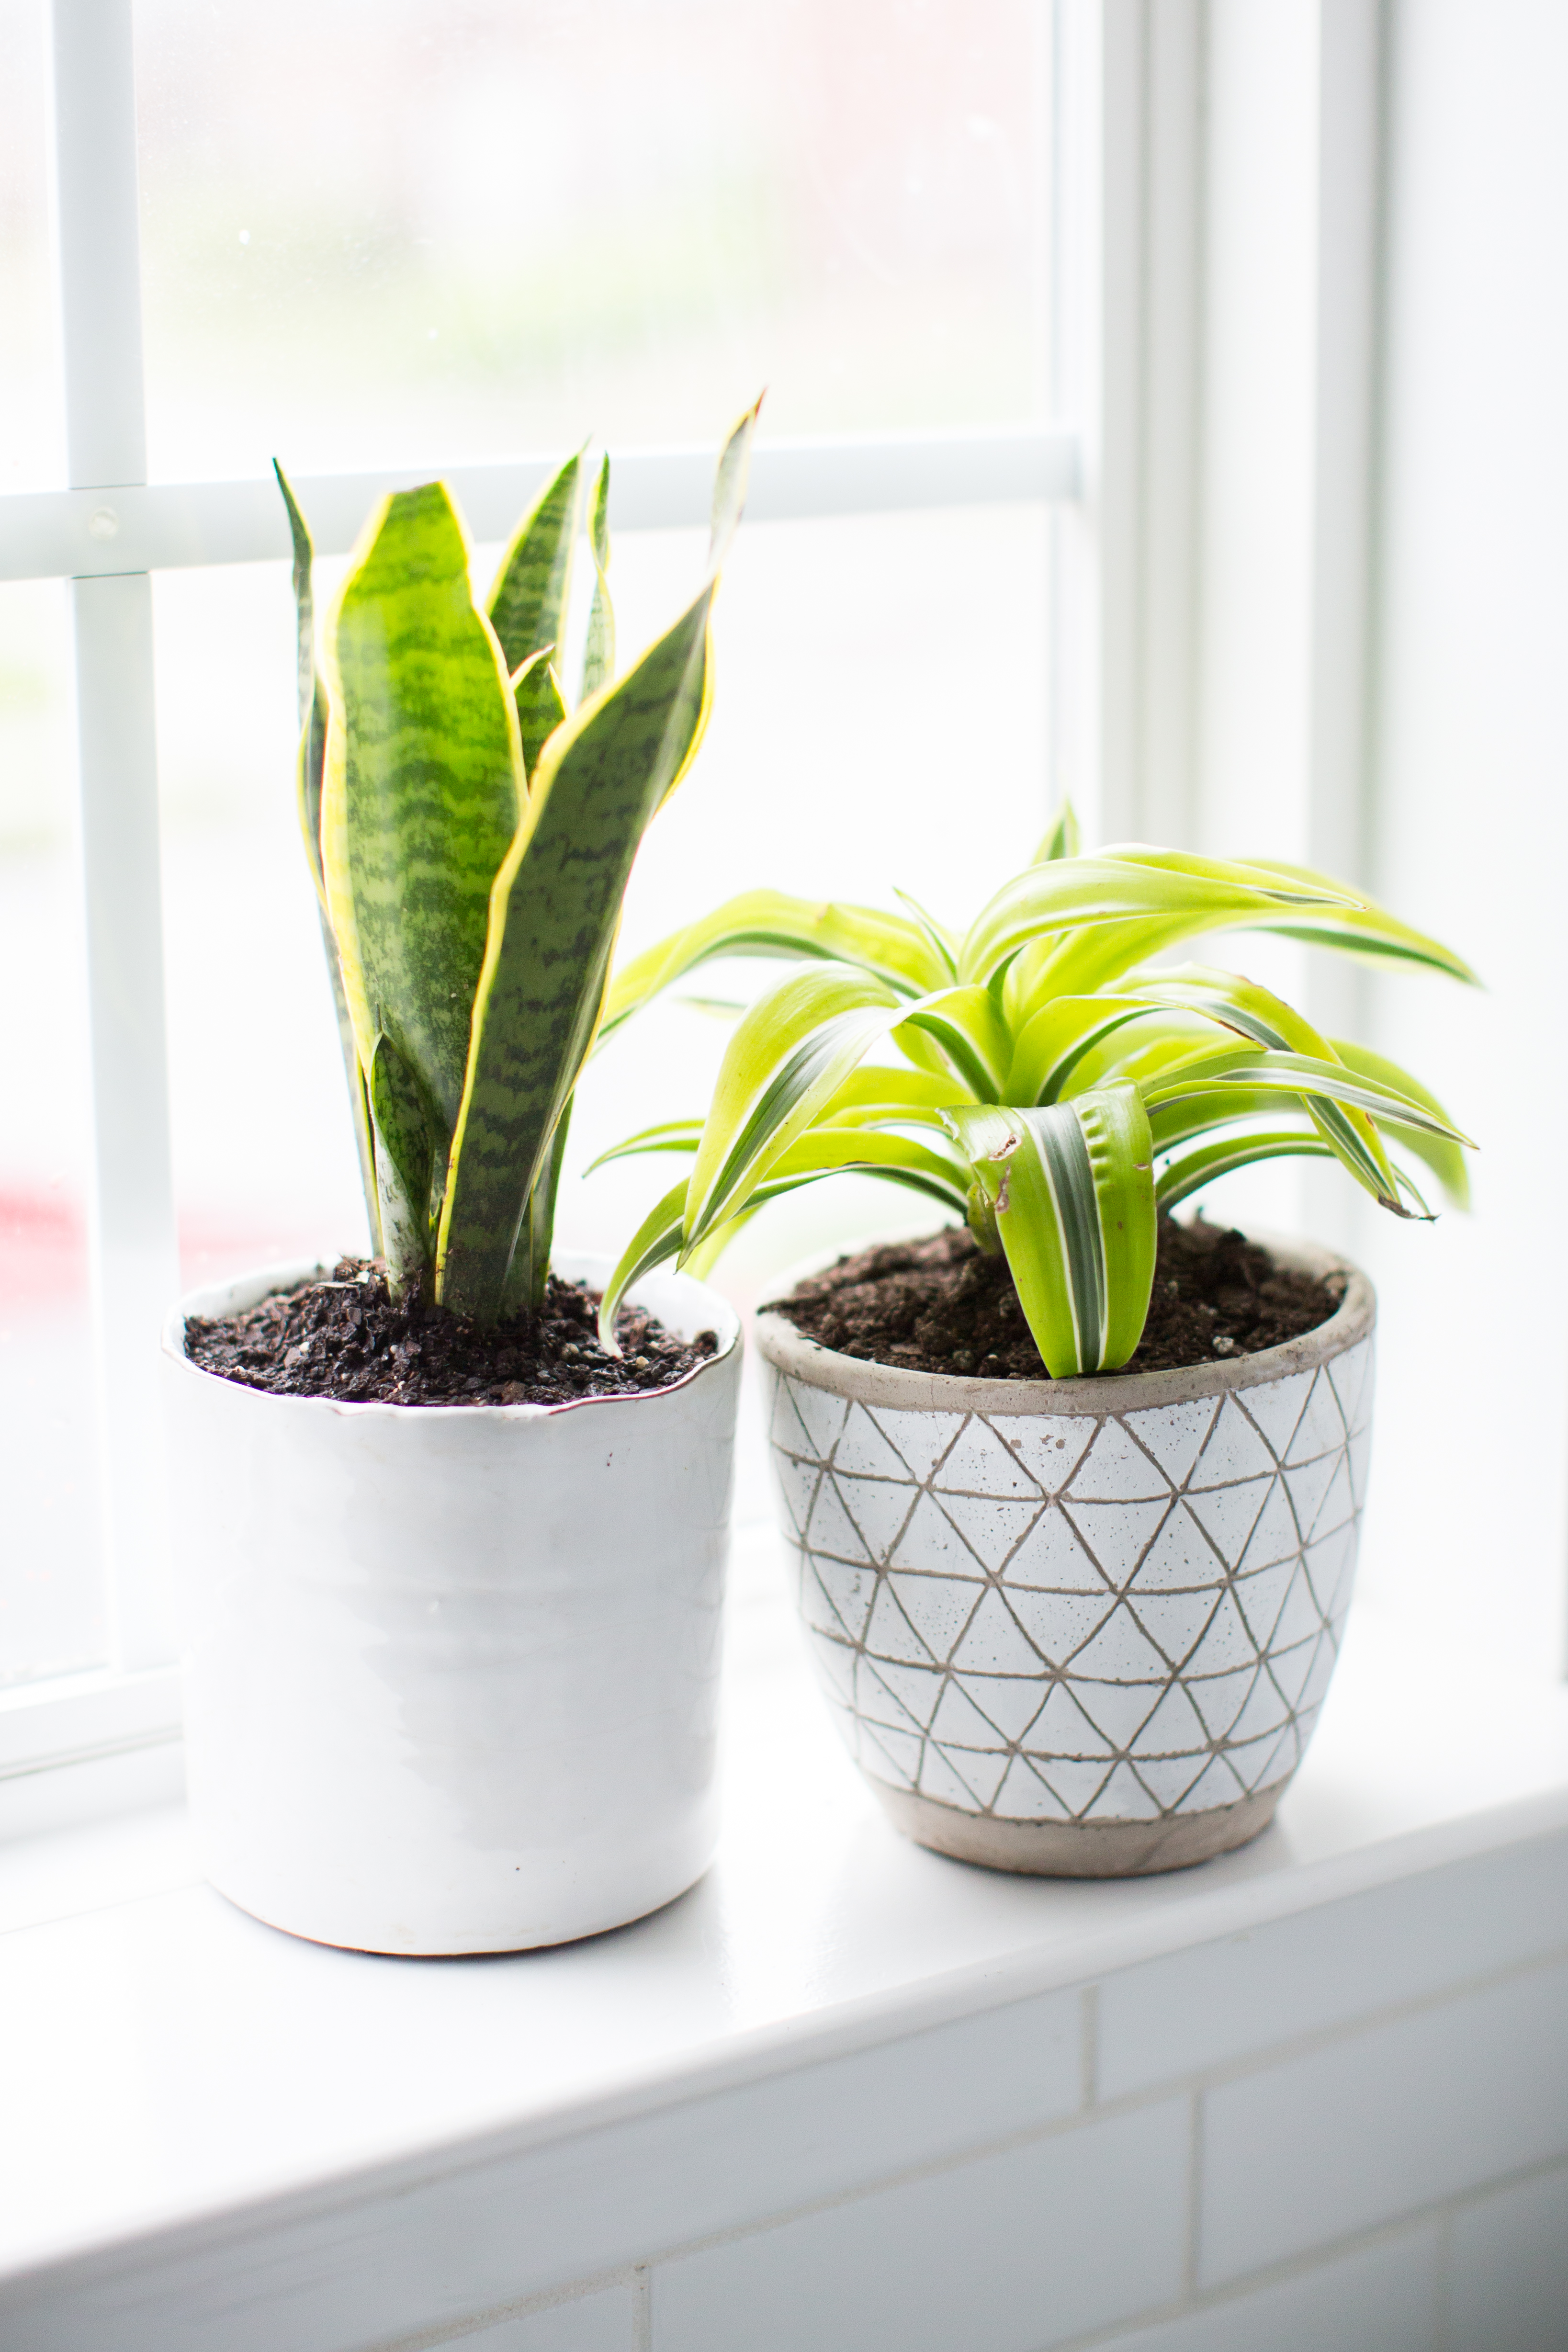 10 Plants that thrive in the bathroom